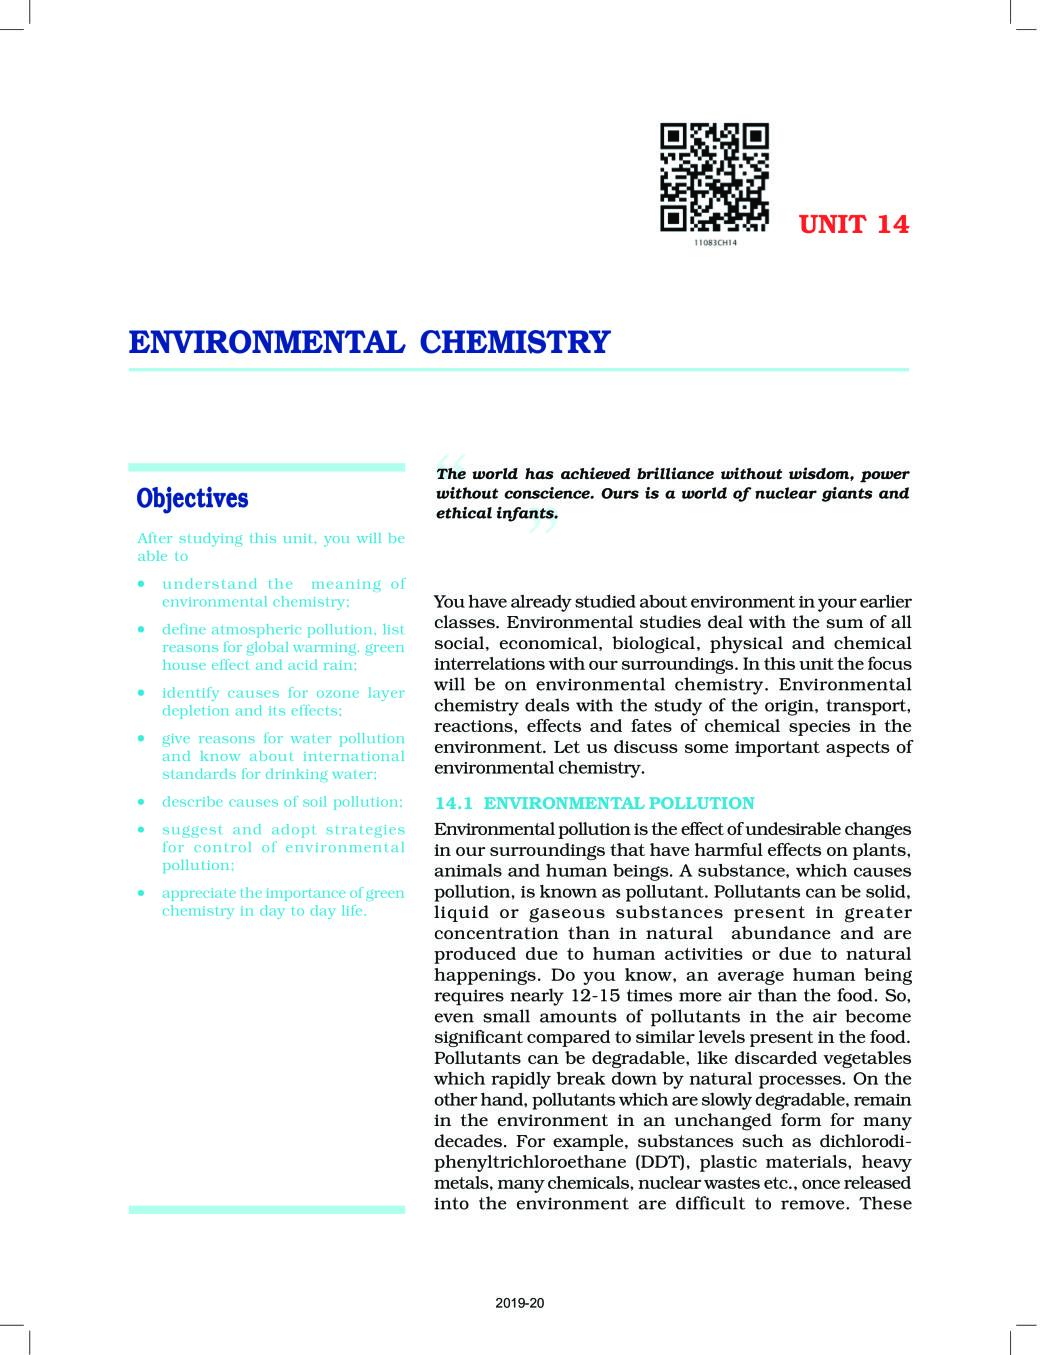 NCERT Book Class 11 Chemistry Chapter 14 Environmental Chemistry